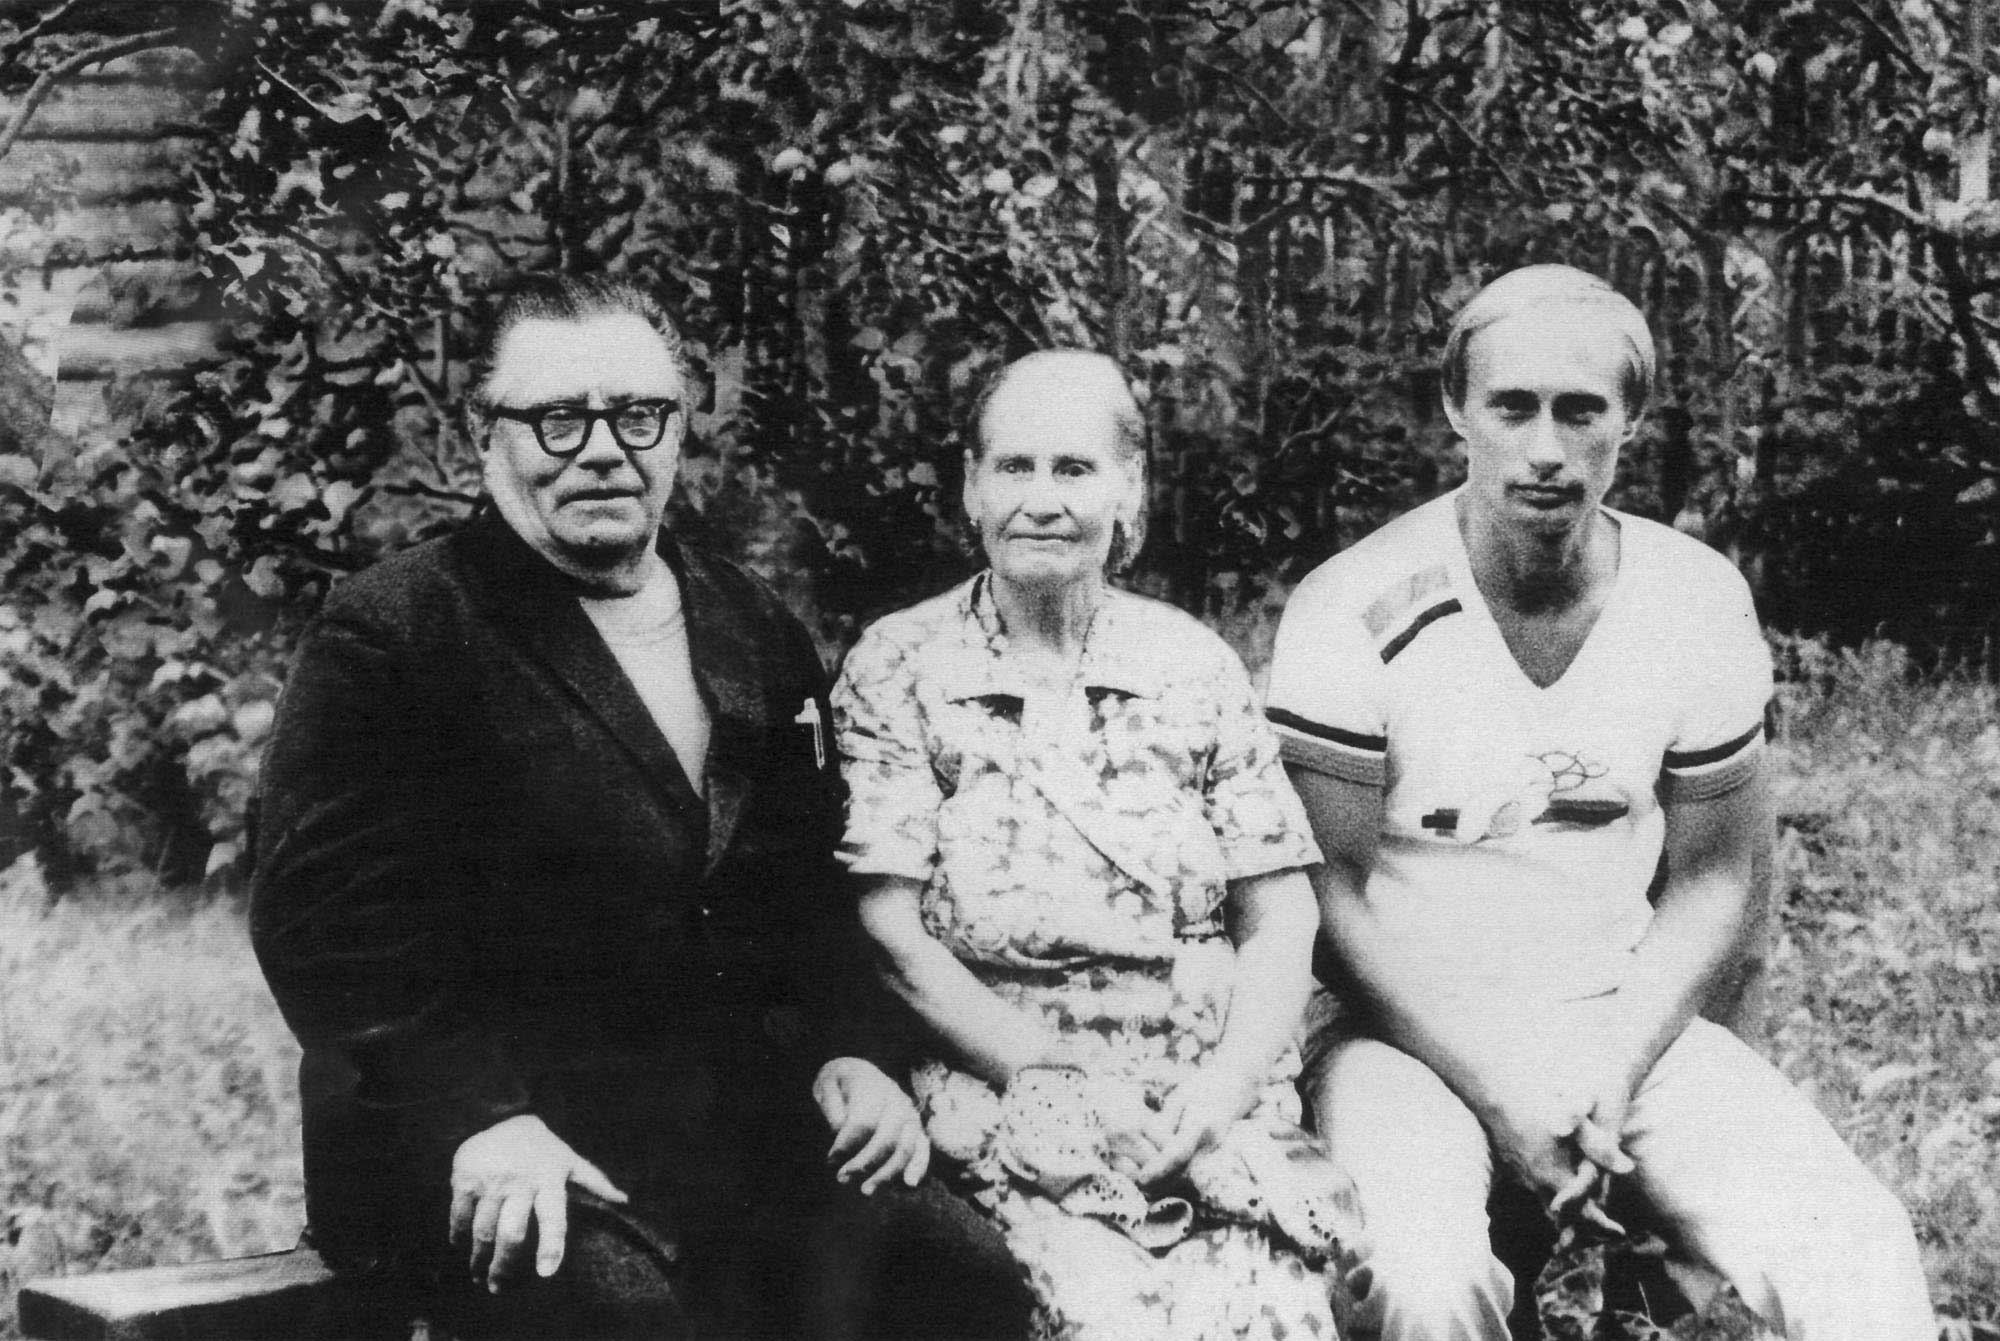 Vladimir Putin with his parents, Maria and Vladimir, just before his departure to Germany, in 1985.